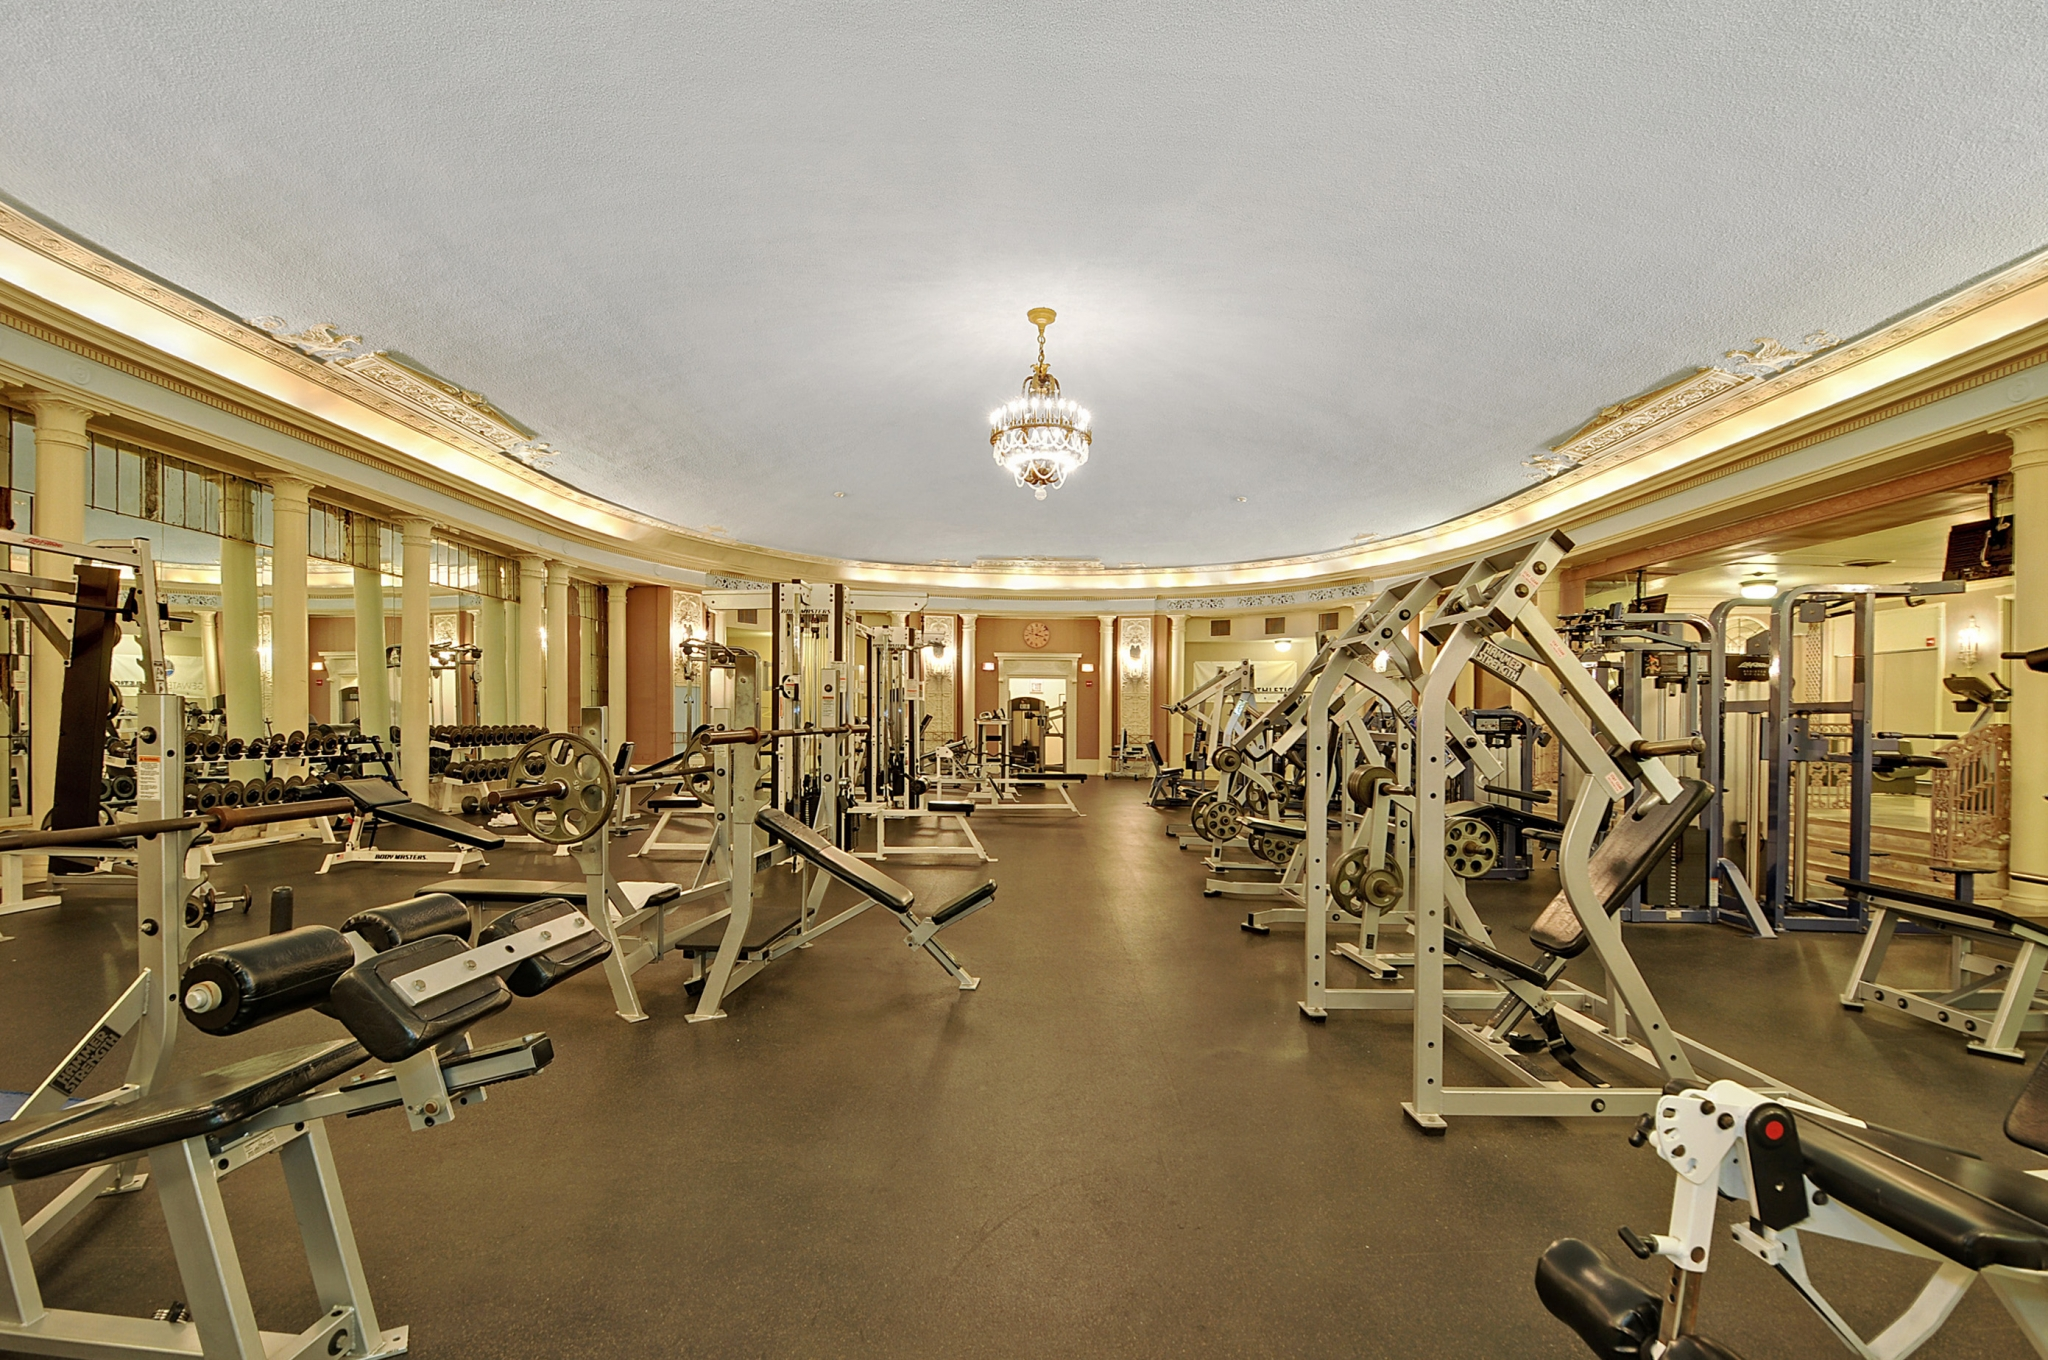 State-of-the-art fitness center at Gold Coast apartments Chicago